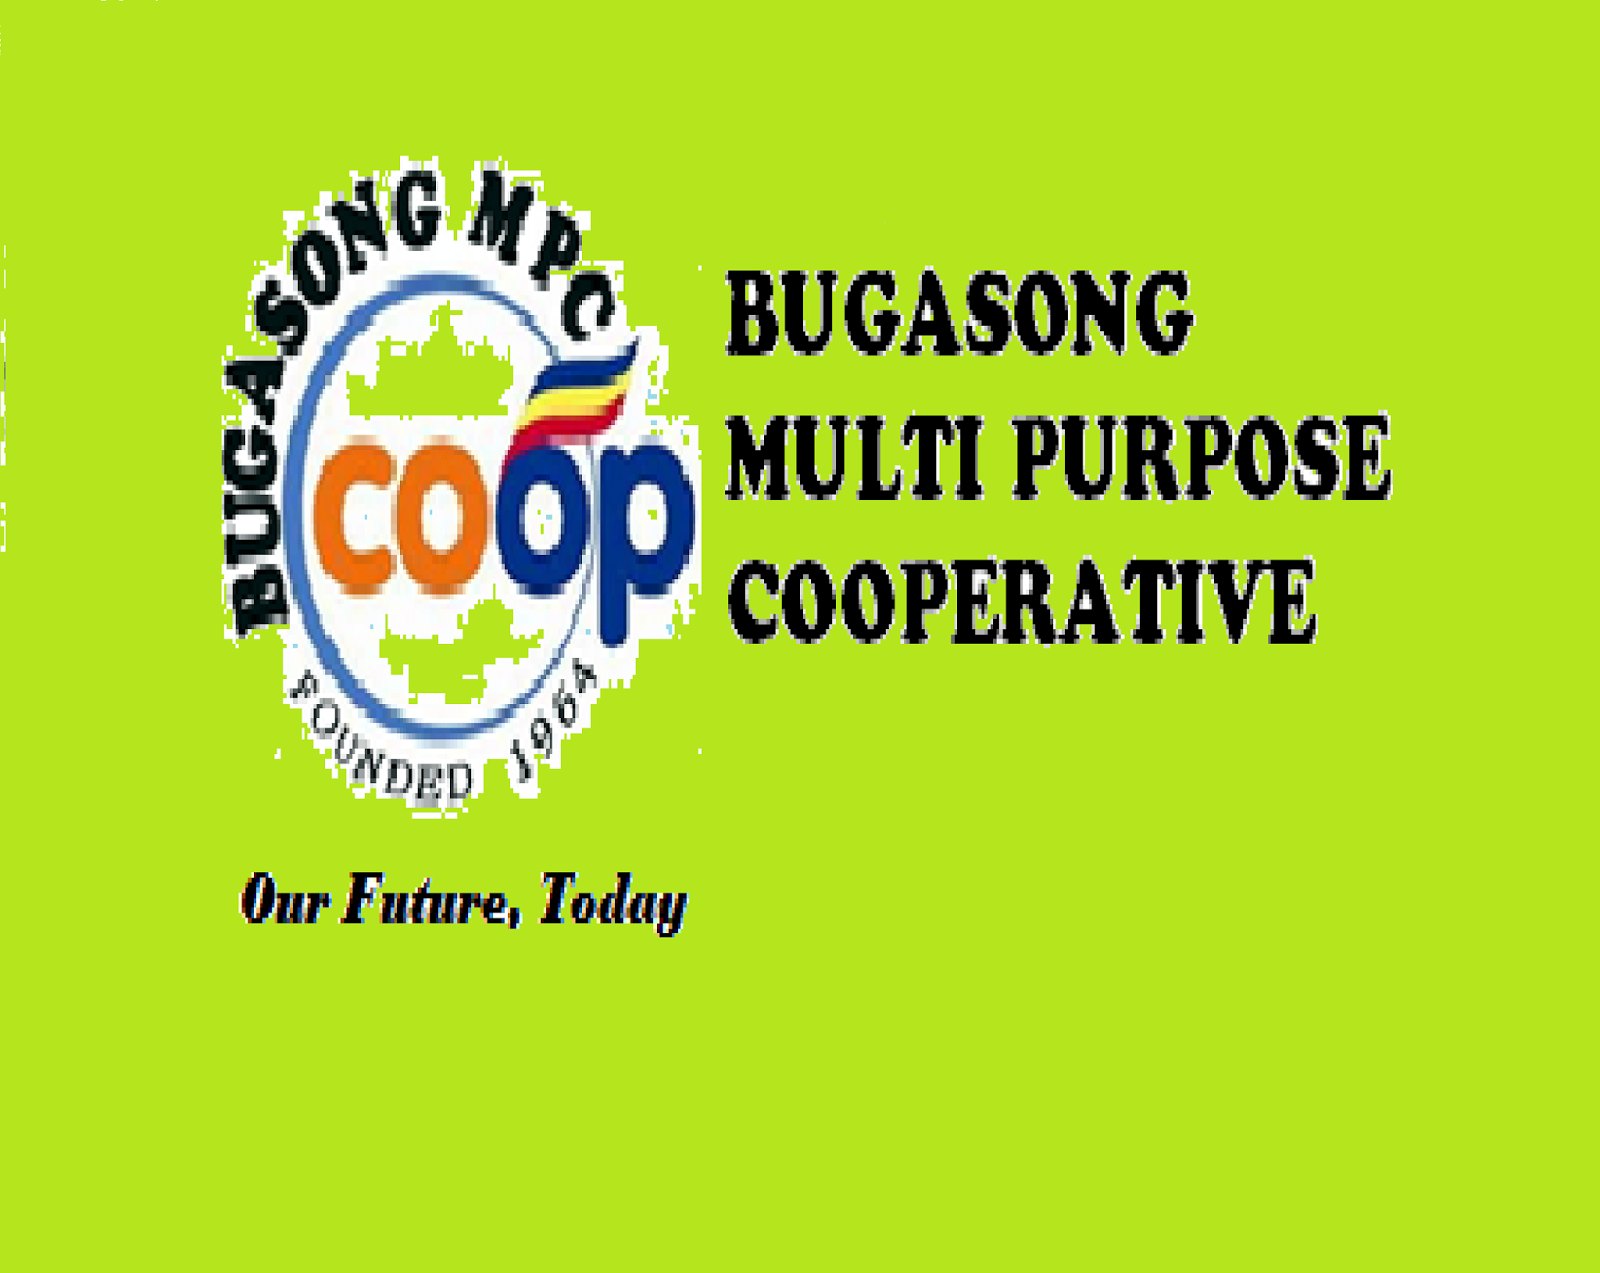 multi purpose coop